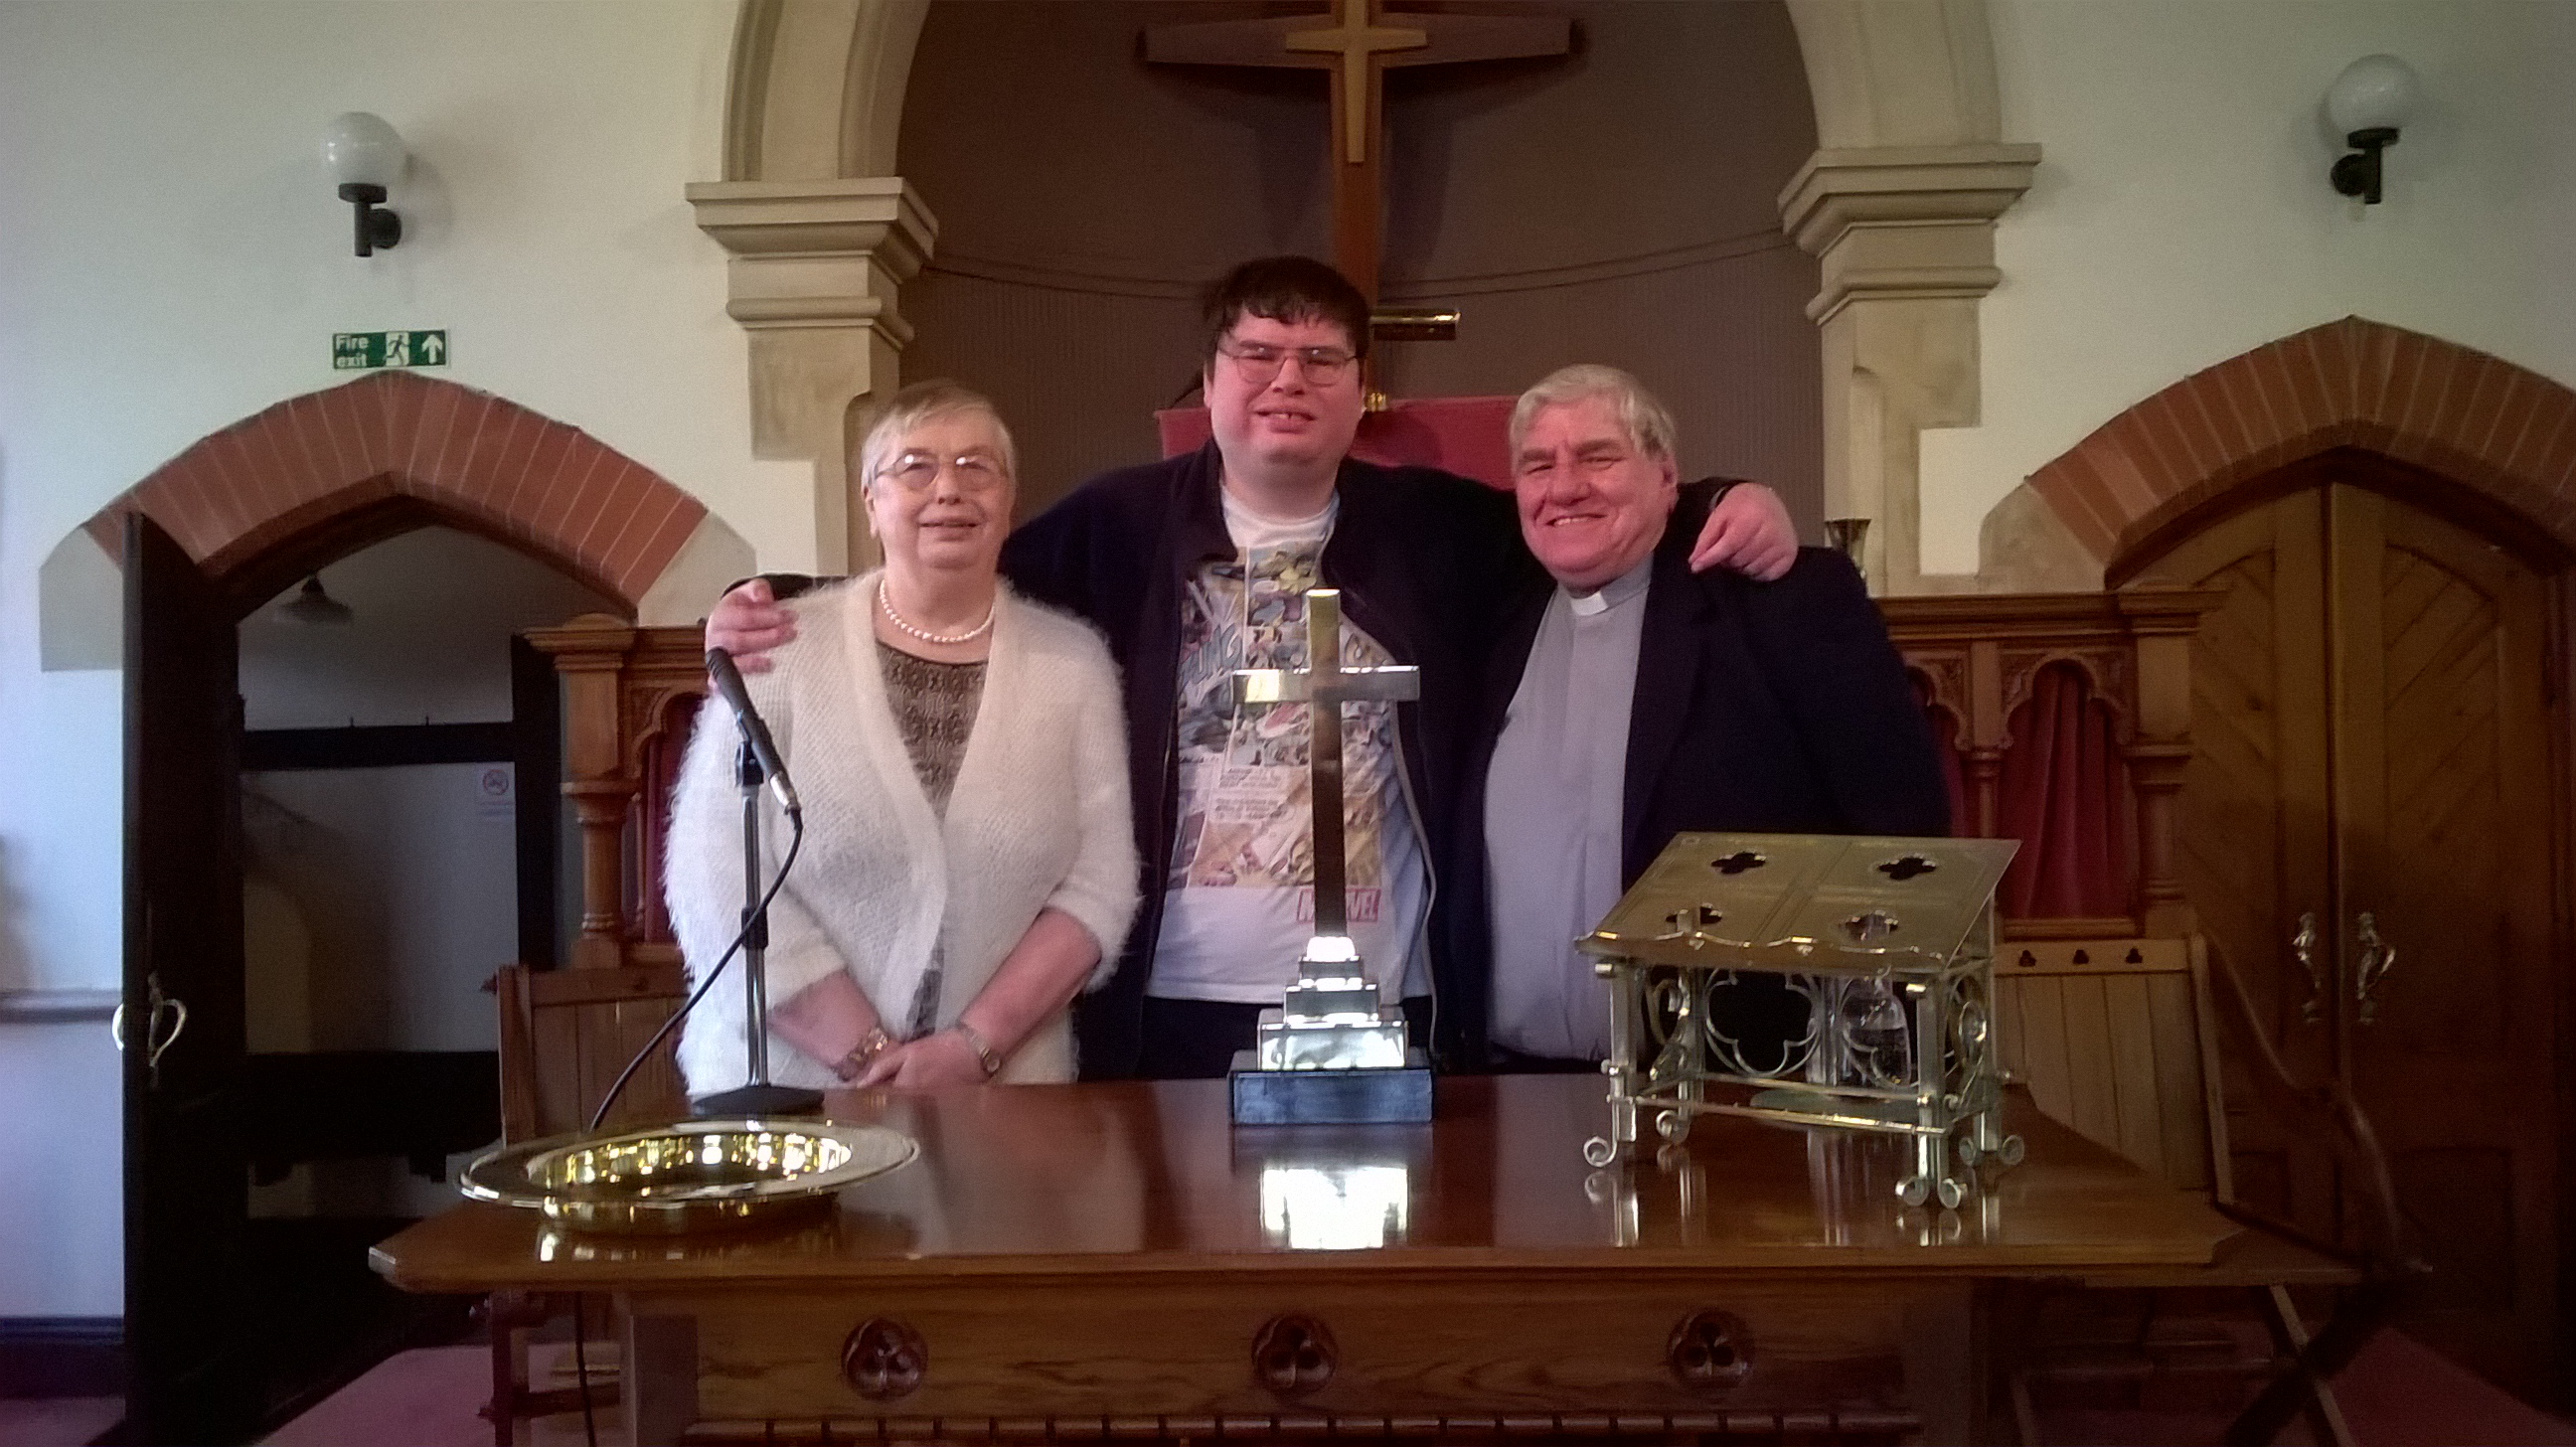 Ken Martin and family. Ken in minister of Malvern Link United Reformed Church